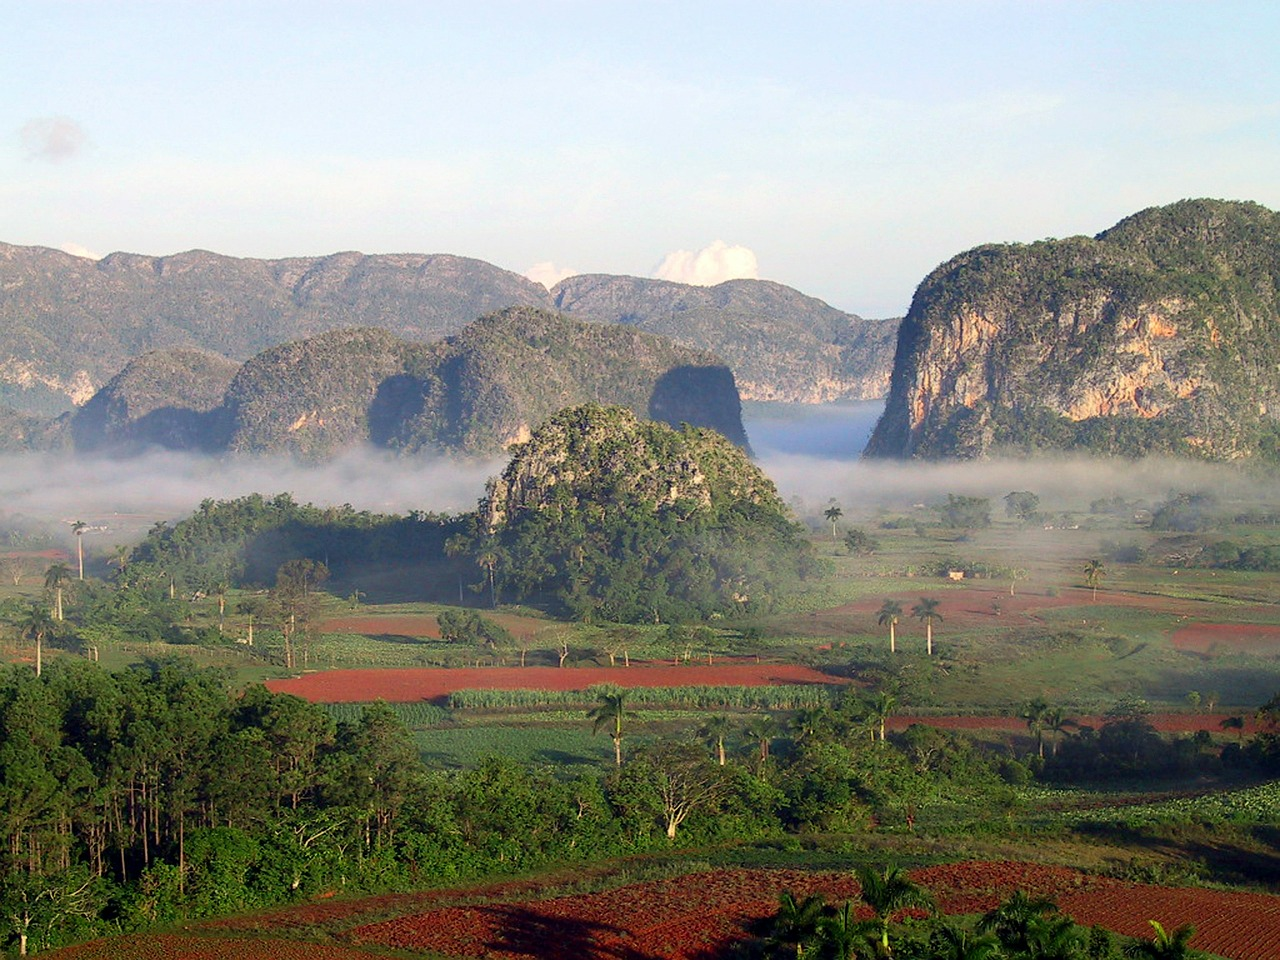 cuban mountains